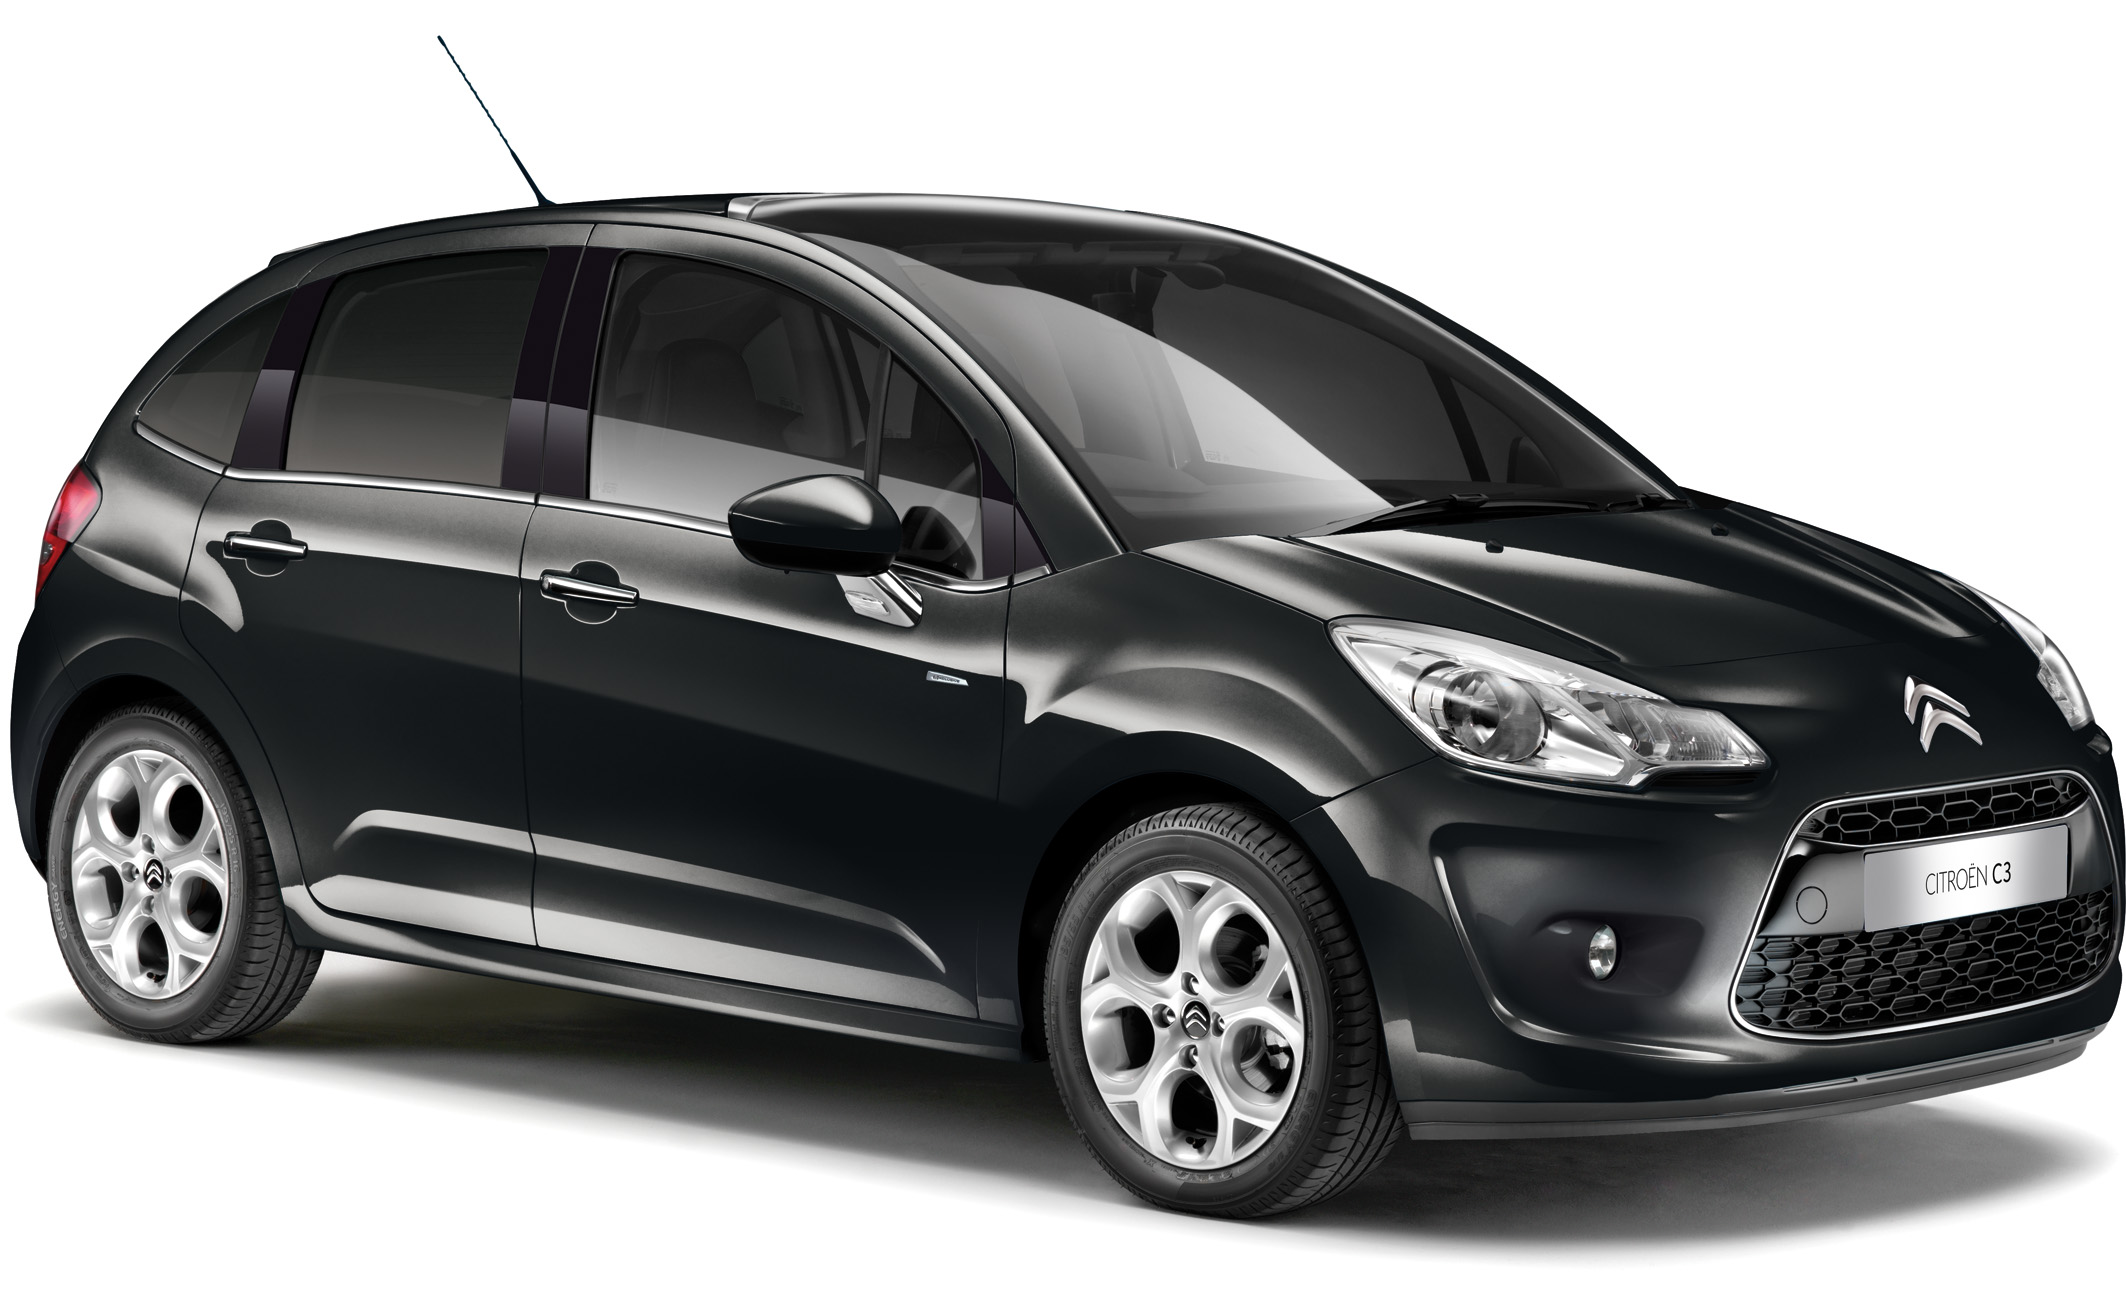 citroen c3 review and photos. Black Bedroom Furniture Sets. Home Design Ideas